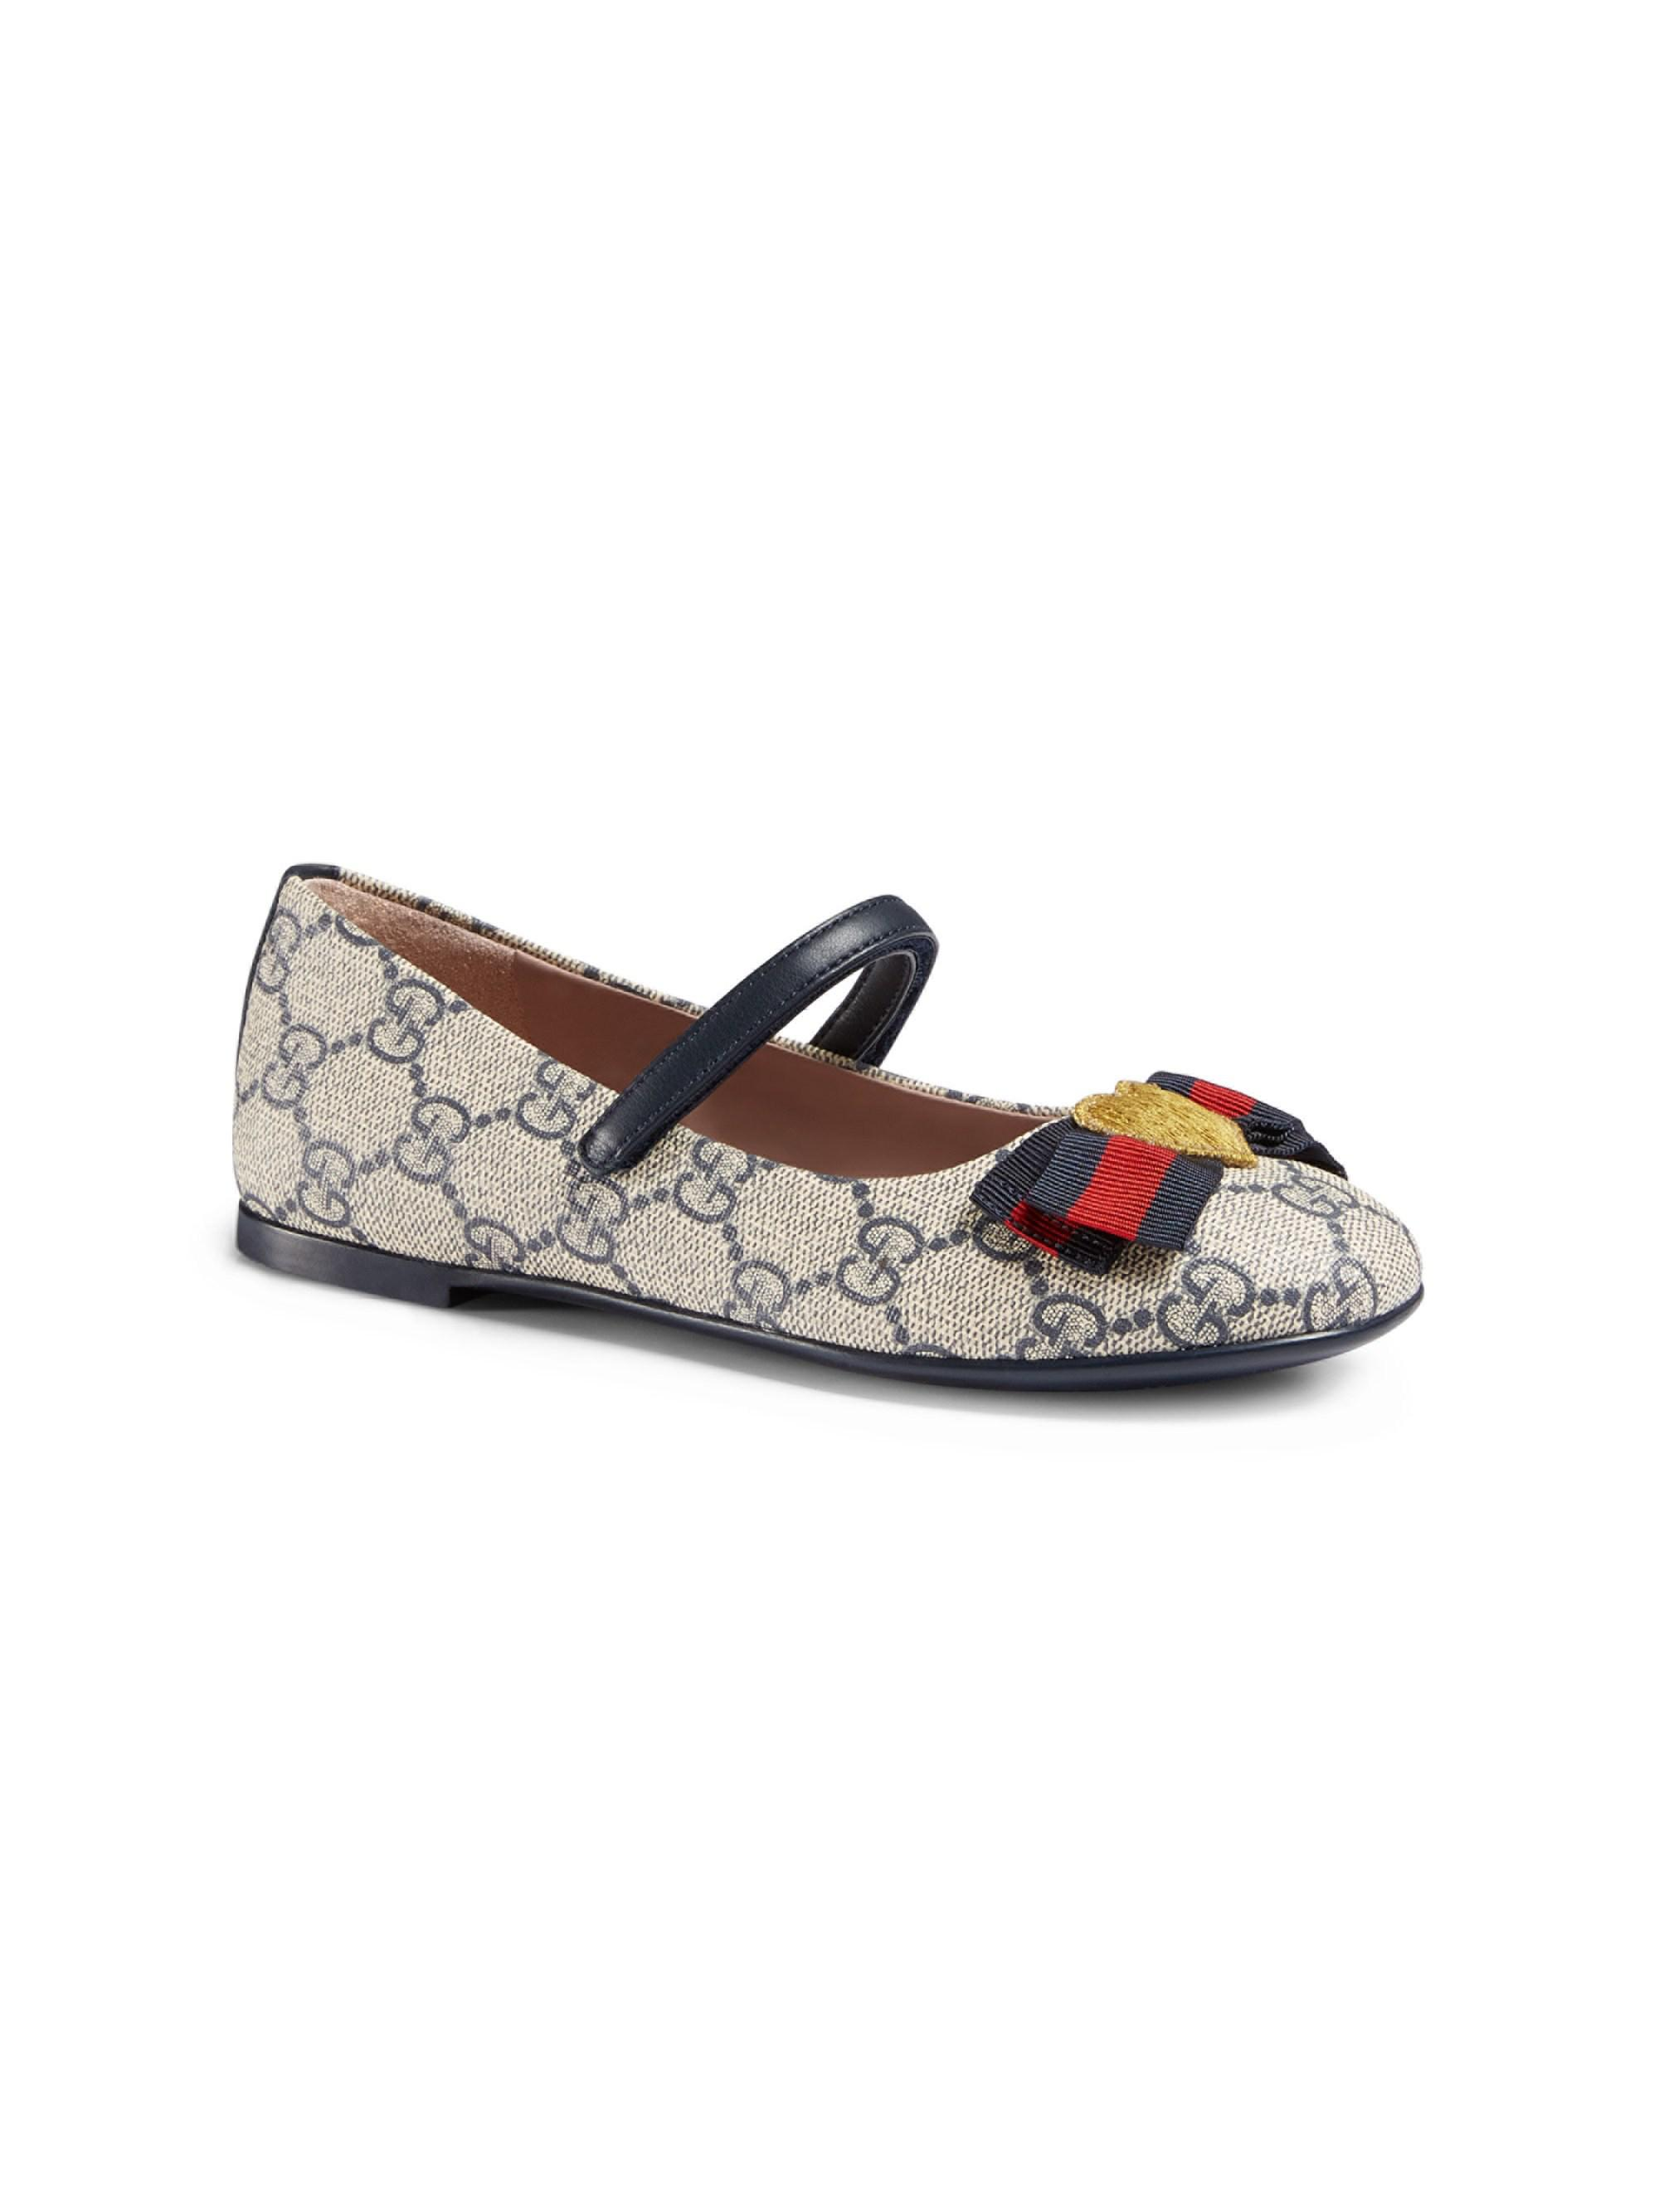 4283794a166a0b Gucci Kid s GG Supreme Ballet Flats in Blue - Lyst